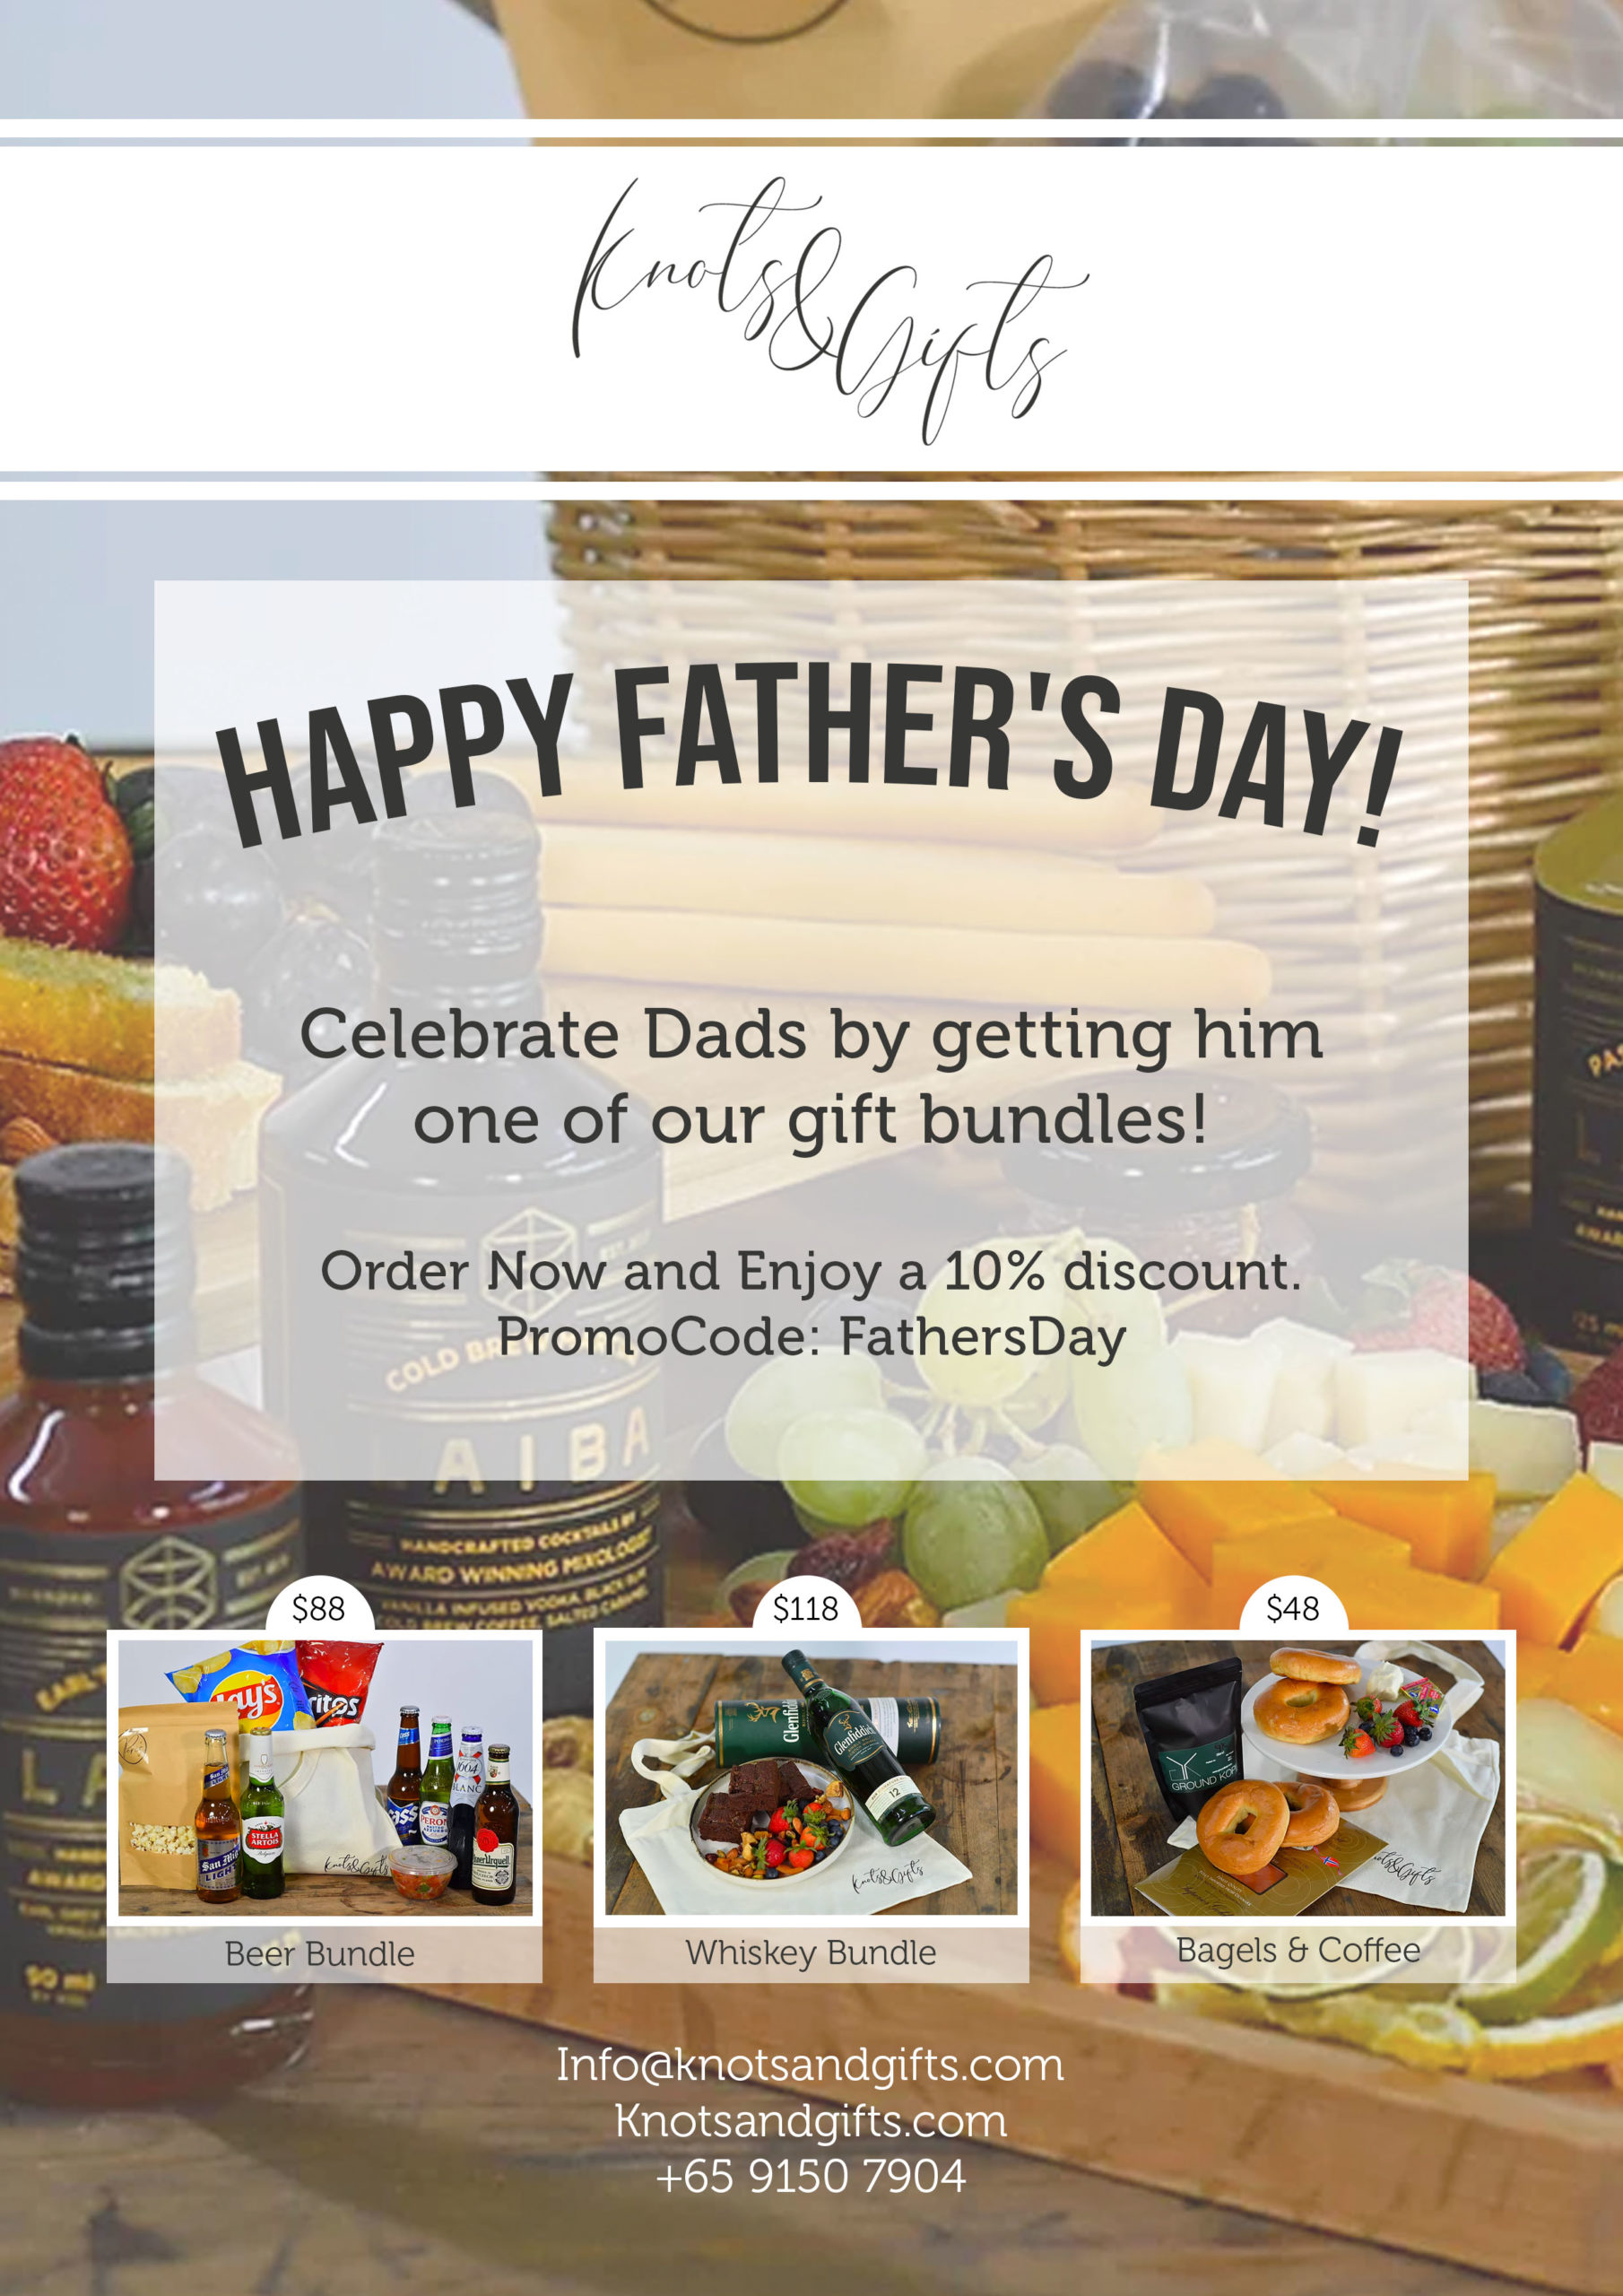 Father's Day Gift Ideas from Knots & Gifts